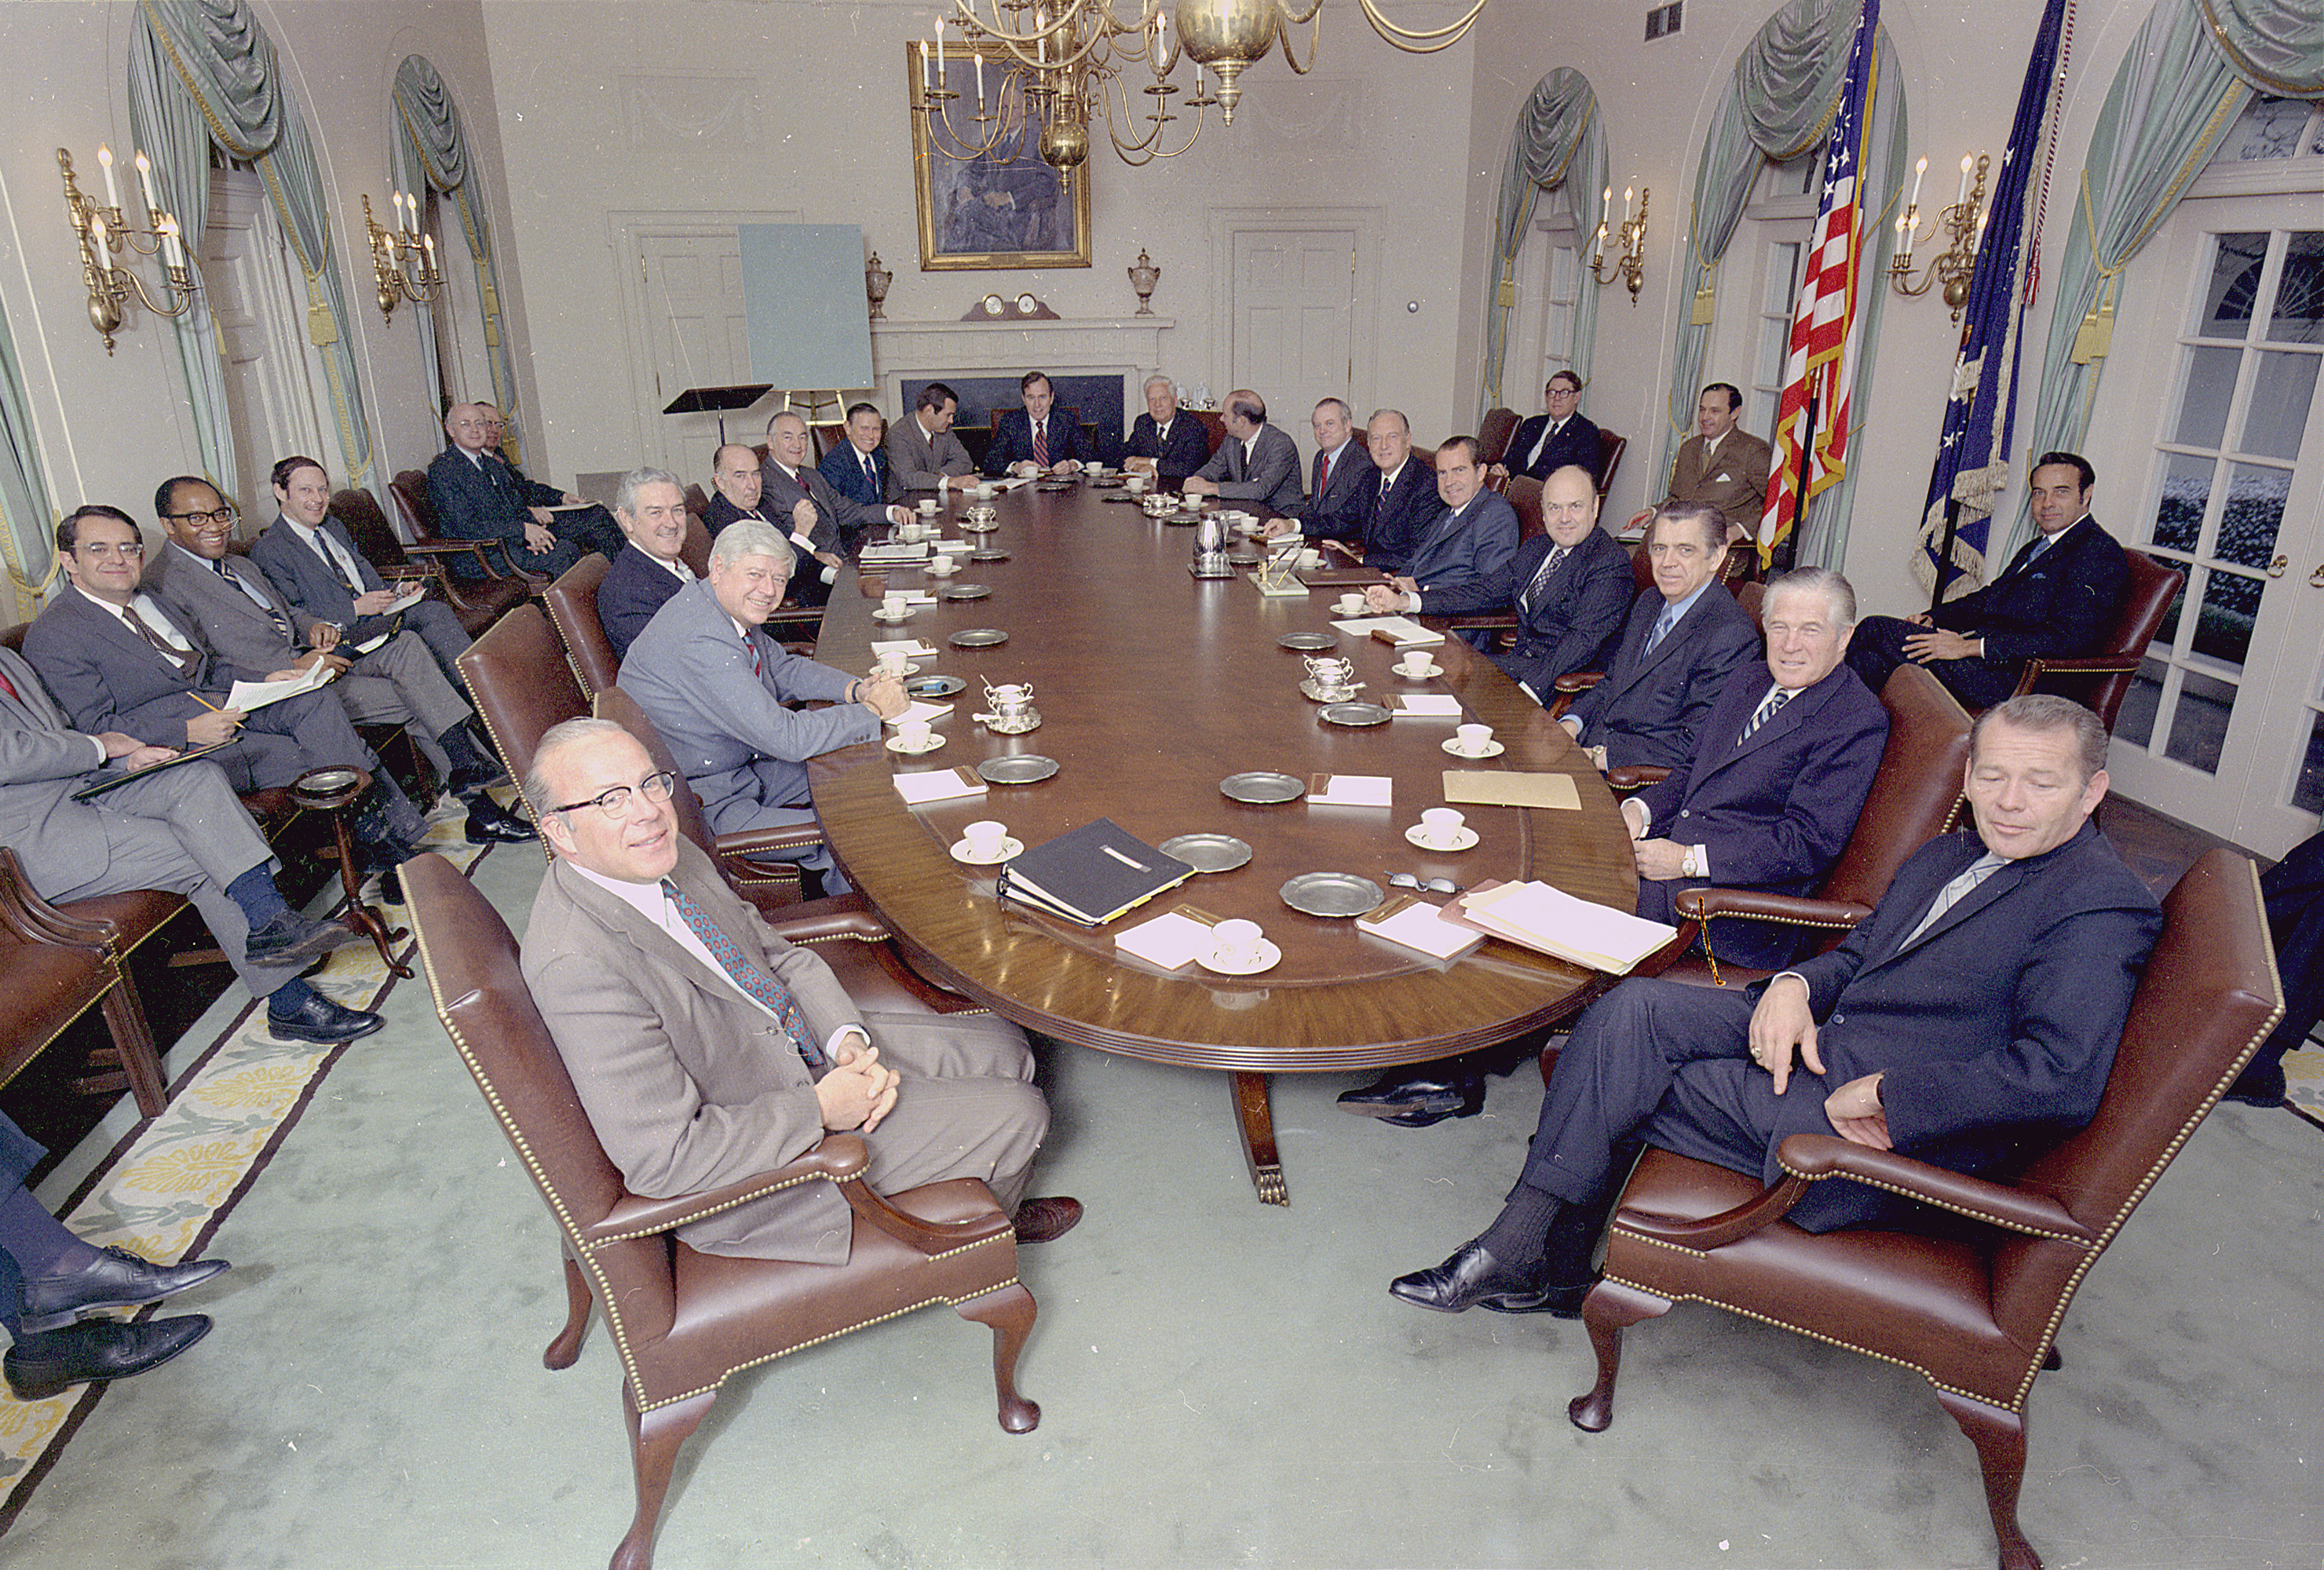 File:Richard M. Nixon Posing With His Cabinet In The Cabinet Room In The